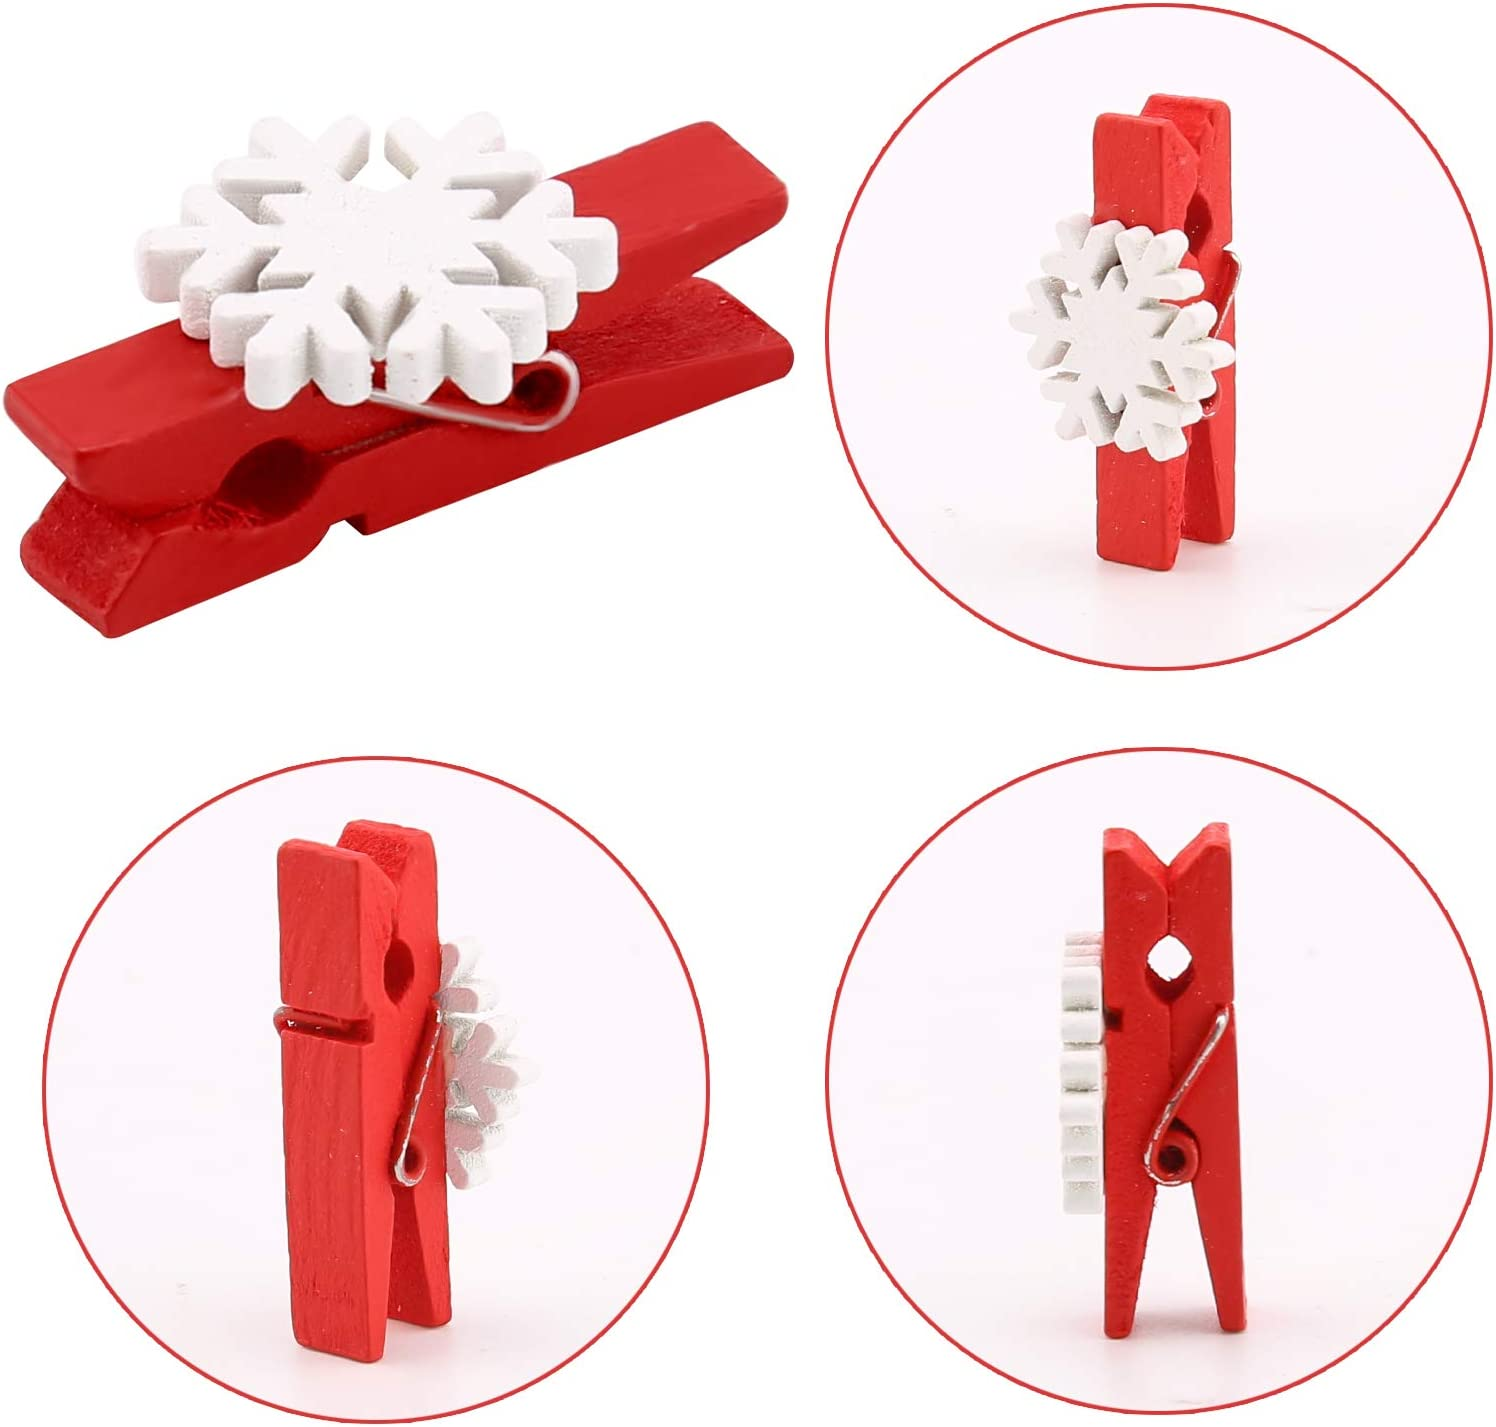 SAVITA 50Pcs Christmas Wooden Clothespins Mini Red Snowflake Pegs Photo Clips with 10m Jute Twine for Hanging Cards Photo Paper Crafts